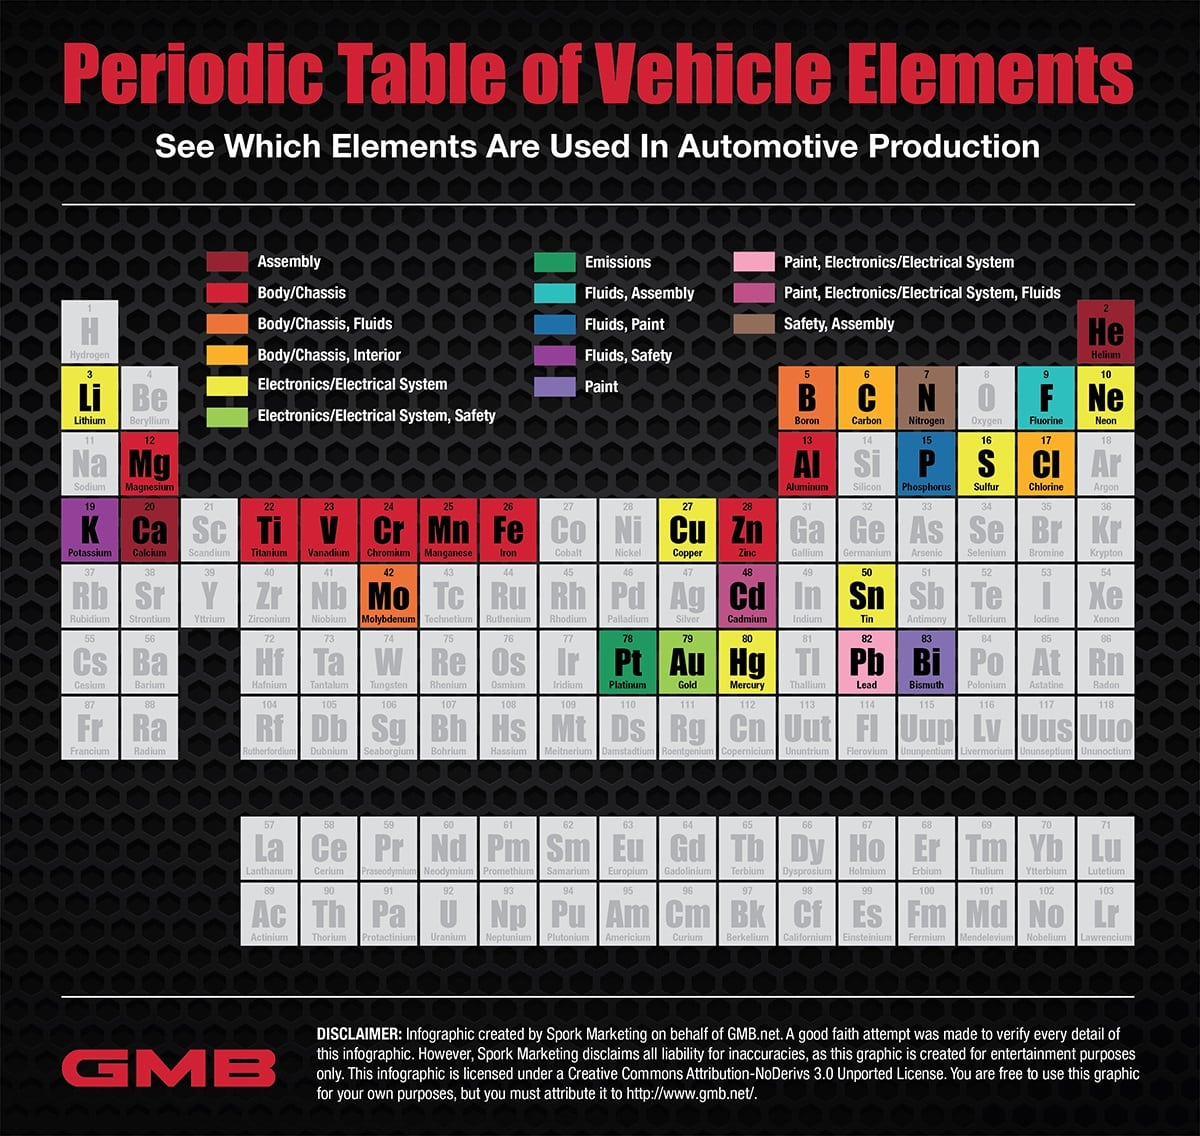 platinum platinum is a key component in catalytic converters because of its natural resistance to heat and corrosion in the us the auto industry uses - Periodic Table Uses